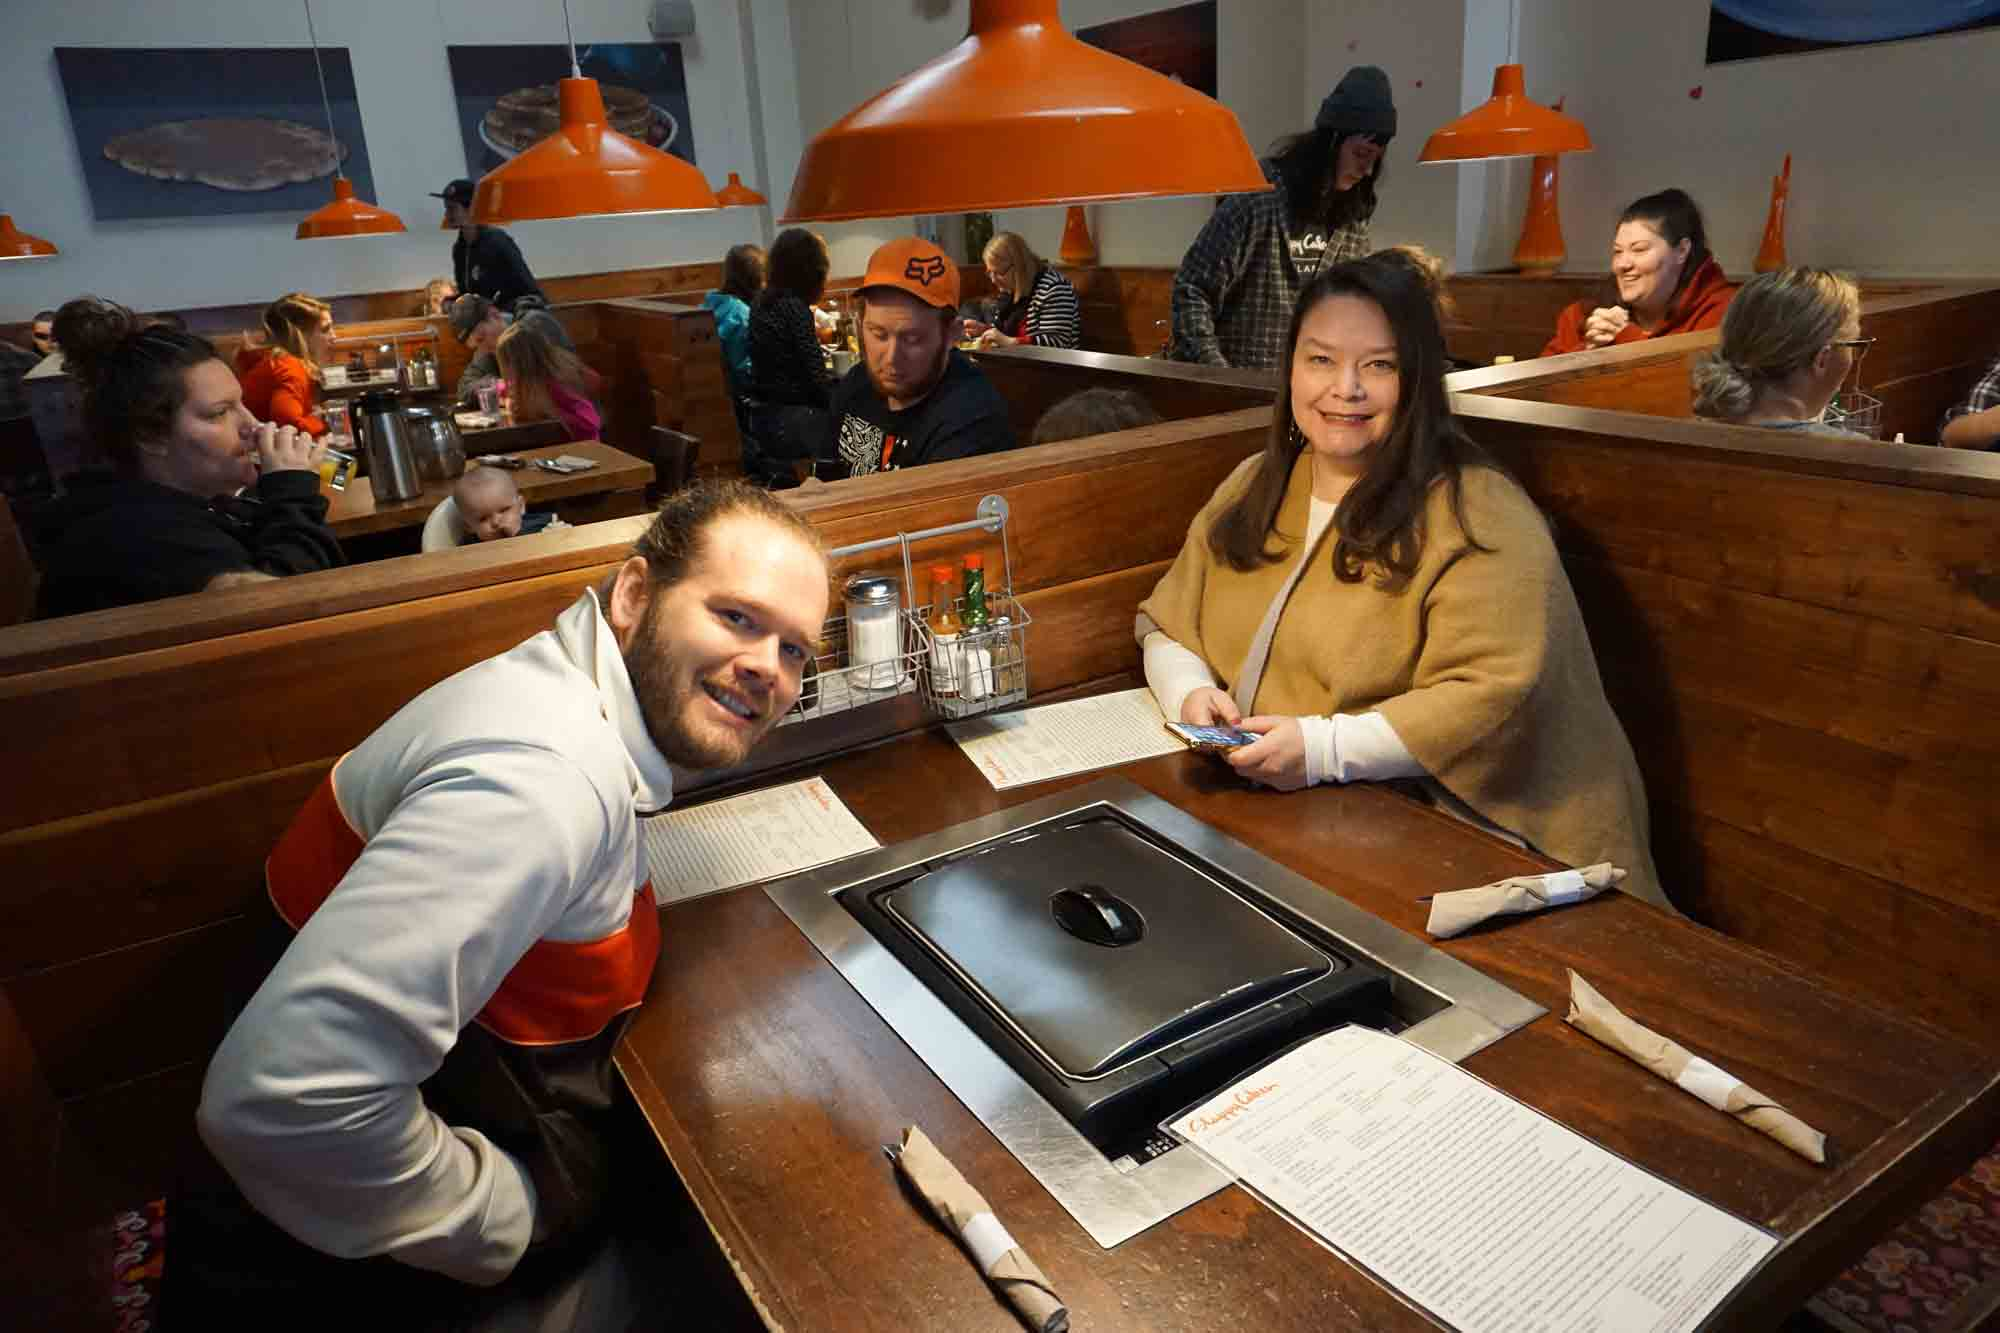 Erik and Beth sitting at a table at the restaurant Slappy Cakes in Portland Oregon